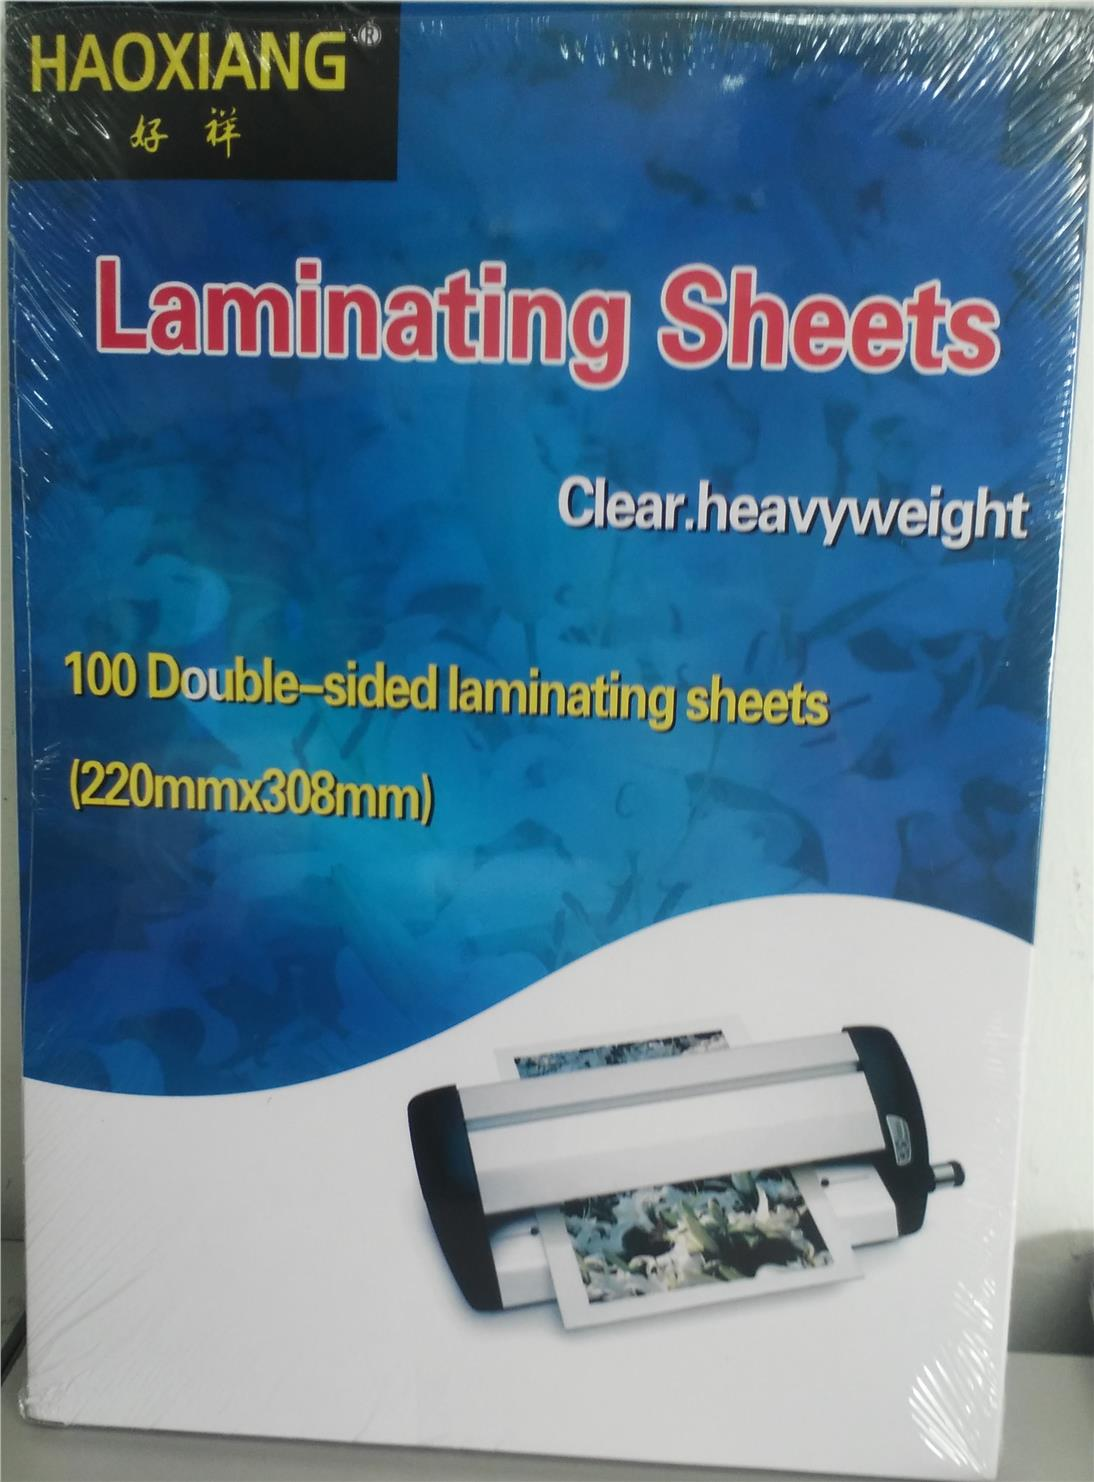 Laminate / Laminating / Laminator Machine A4 Size MQ-230